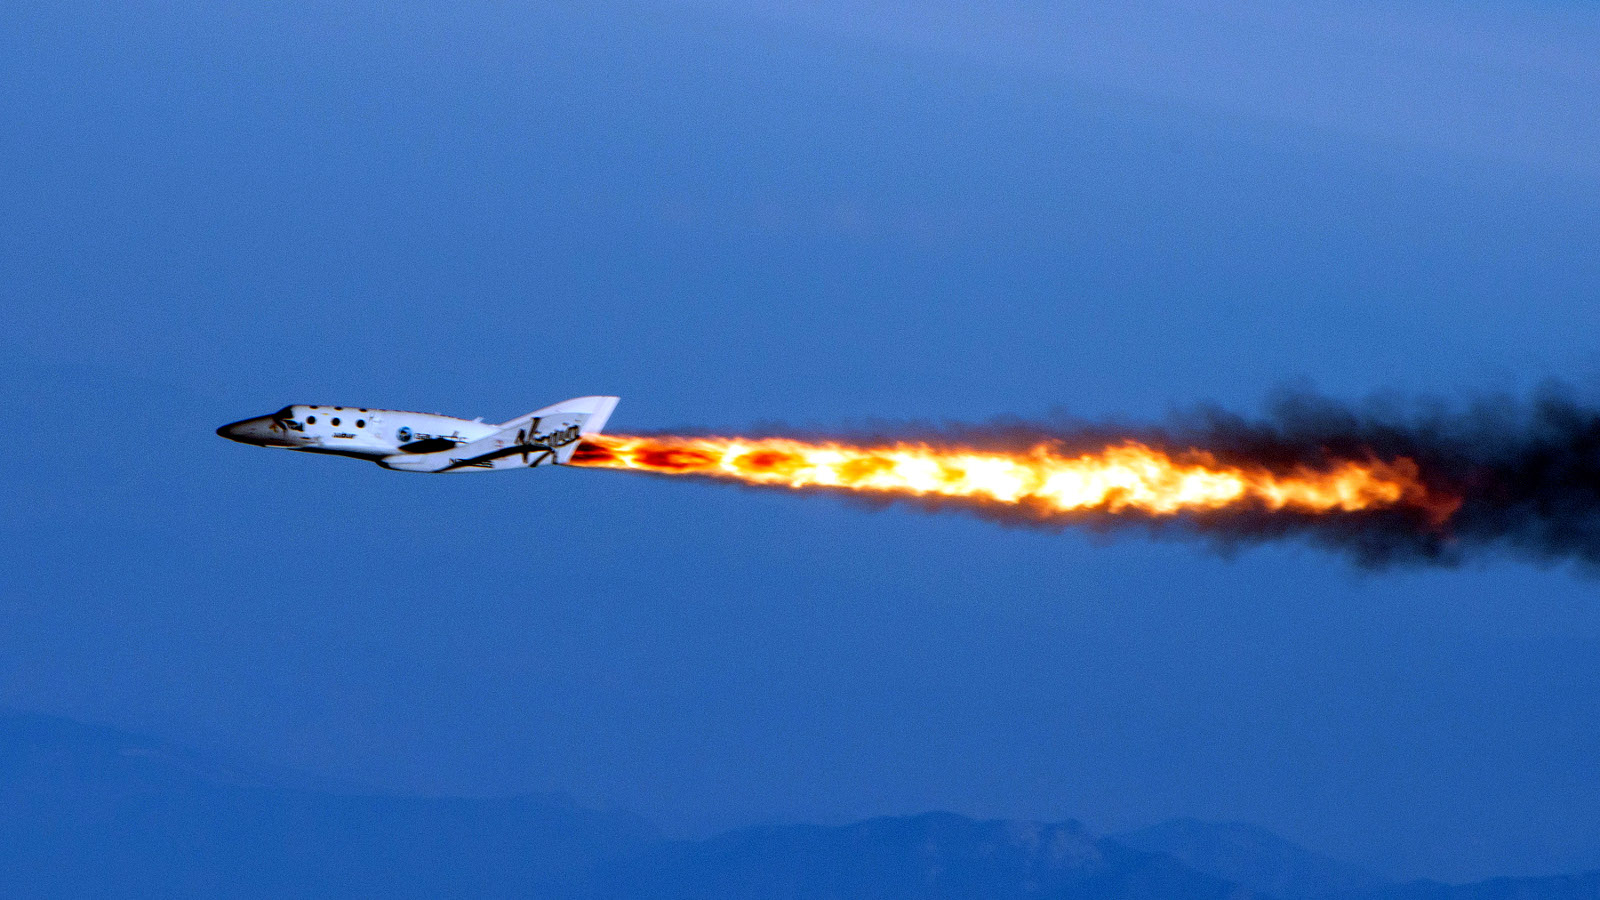 ADVANCE FOR WEEKEND MEMBER EXCHANGE.; FOR SUNDAY, FEB. 9 - FILE - This April 29, 2013 file photo provided by Virgin Galactic shows Virgin Galactic's SpaceShipTwo under rocket power, over Mojave, Calif. The rise of commercial space raises questions about the future of Houston as Space City, which for the entire history of U.S. spaceflight has been responsible for training and managing the flights of U.S. astronauts.